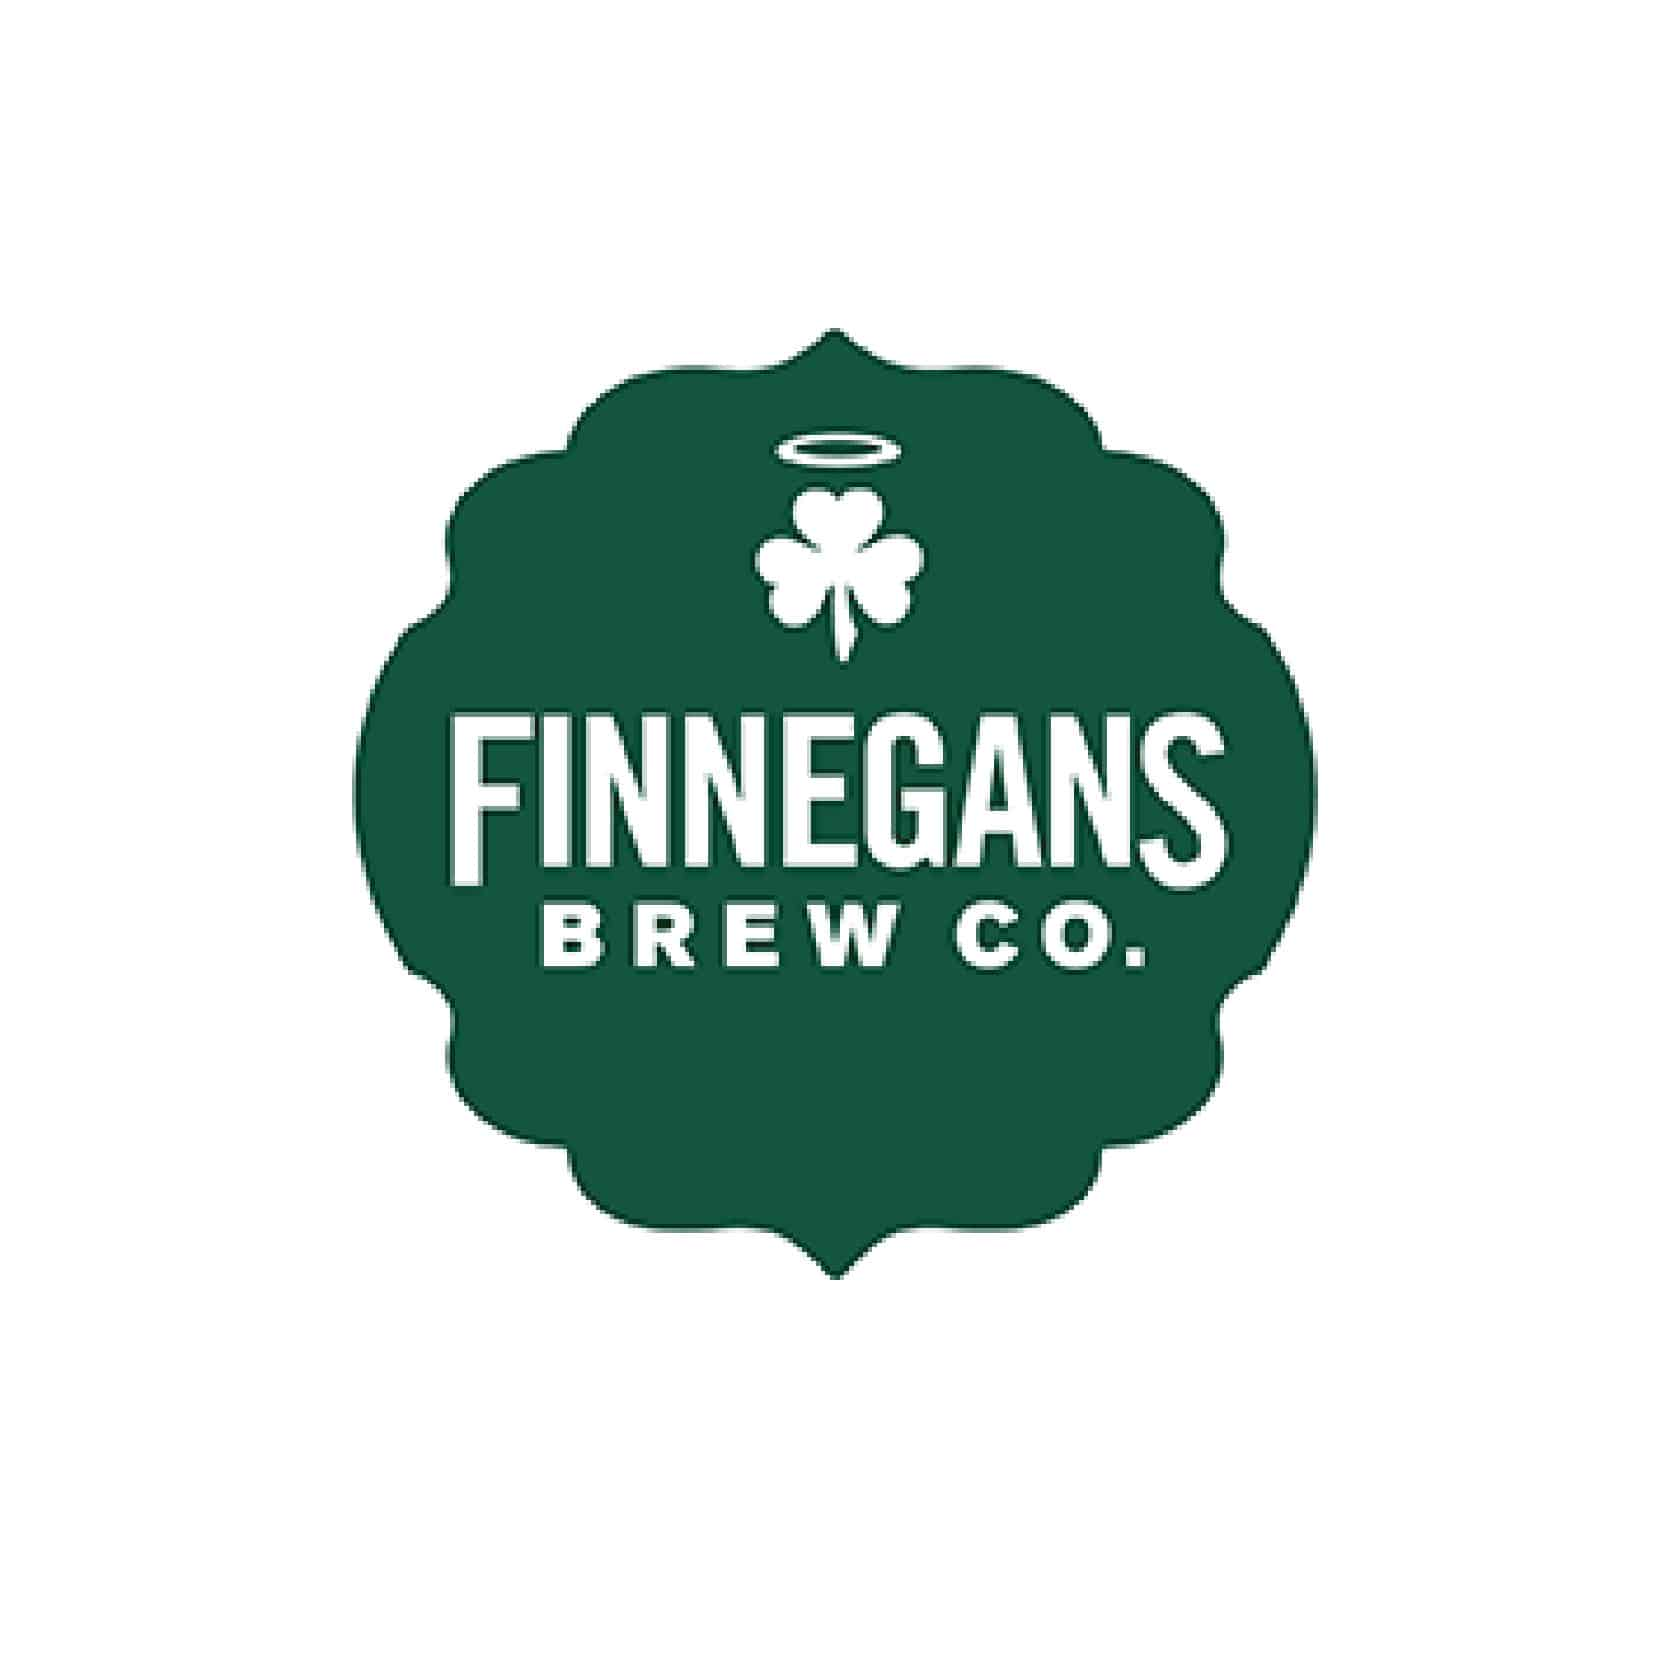 Finnegans Brew Co